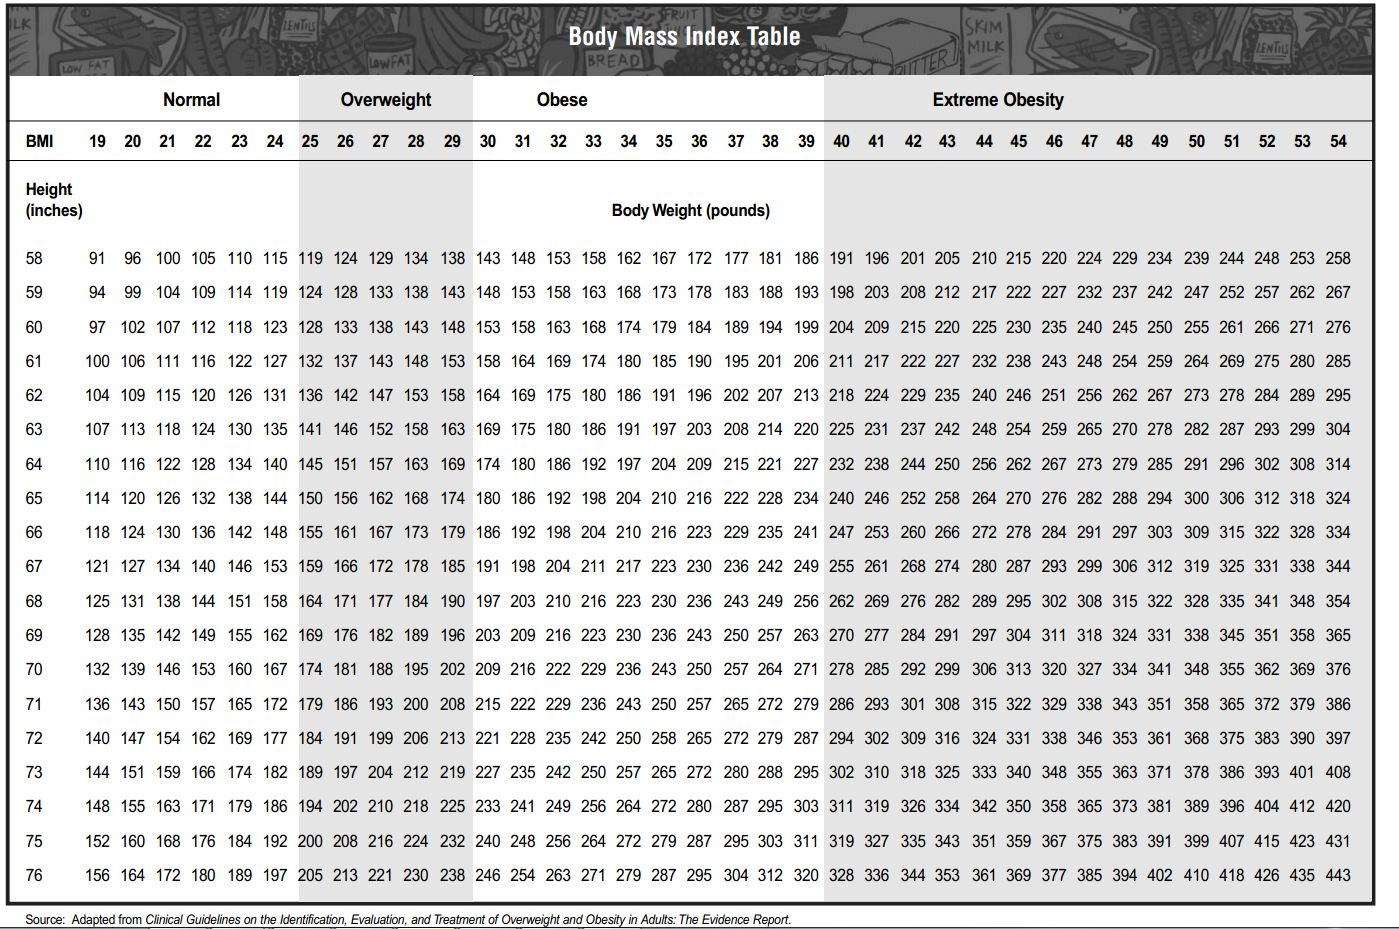 Body Mass Index Calculator Kathy Smith